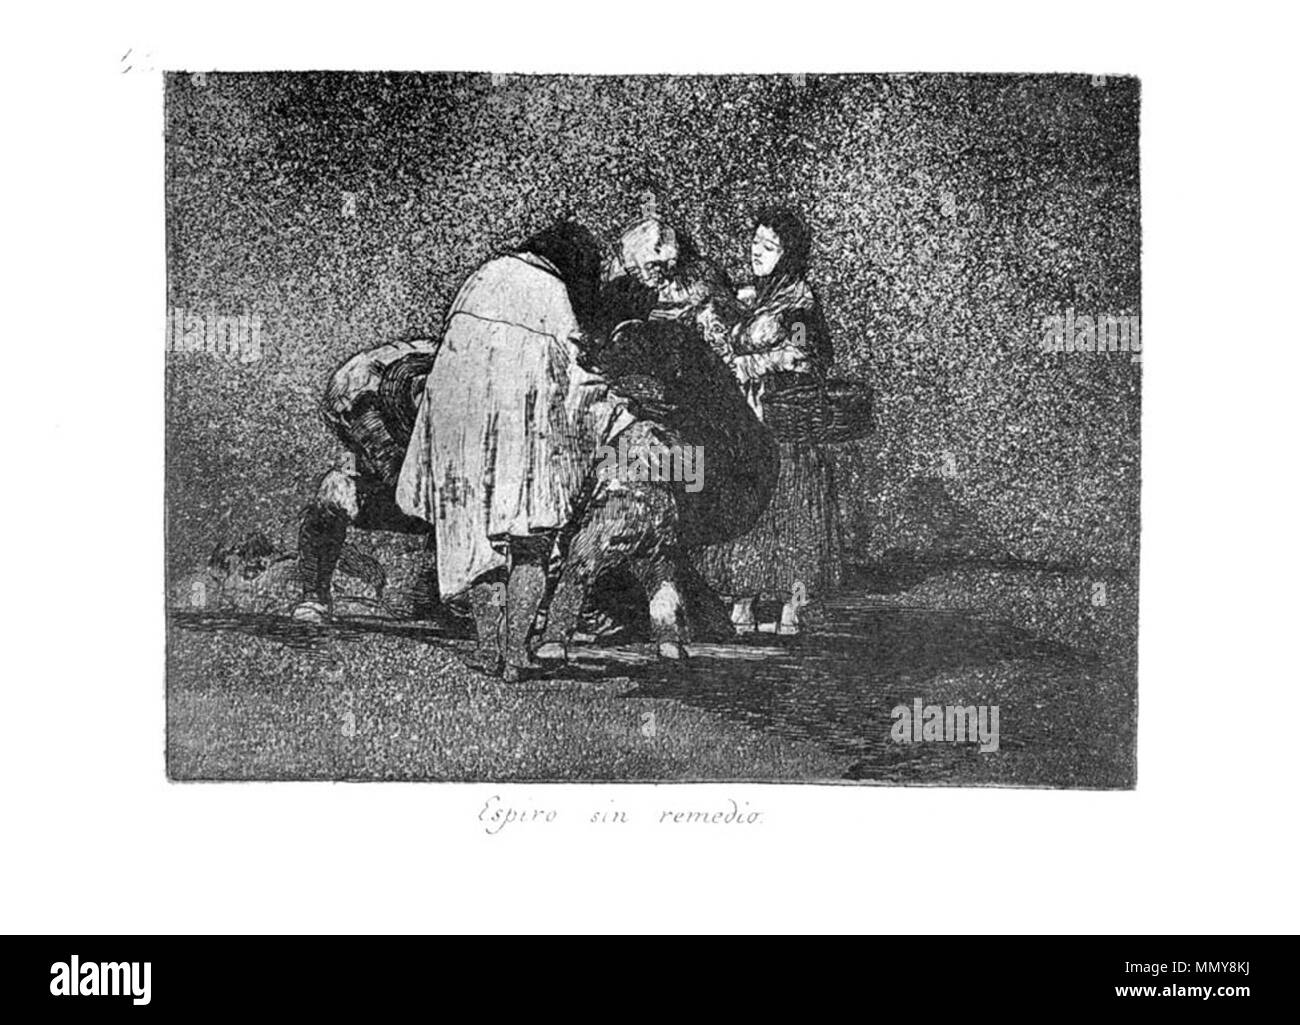 . Los Desatres de la Guerra is a set of 80 aquatint prints created by Francisco Goya in the 1810s. Plate 53: Espiró sin remedio. (There was nothing to be done and he died. )  . 1810s.   Francisco Goya (1746–1828)   Alternative names Francisco Goya Lucientes, Francisco de Goya y Lucientes, Francisco José Goya Lucientes  Description Spanish painter, printmaker, lithographer, engraver and etcher  Date of birth/death 30 March 1746 16 April 1828  Location of birth/death Fuendetodos Bordeaux  Work location Madrid, Zaragoza, Bordeaux  Authority control  : Q5432 VIAF:?54343141 ISNI:?0000 0001 2280 - Stock Image